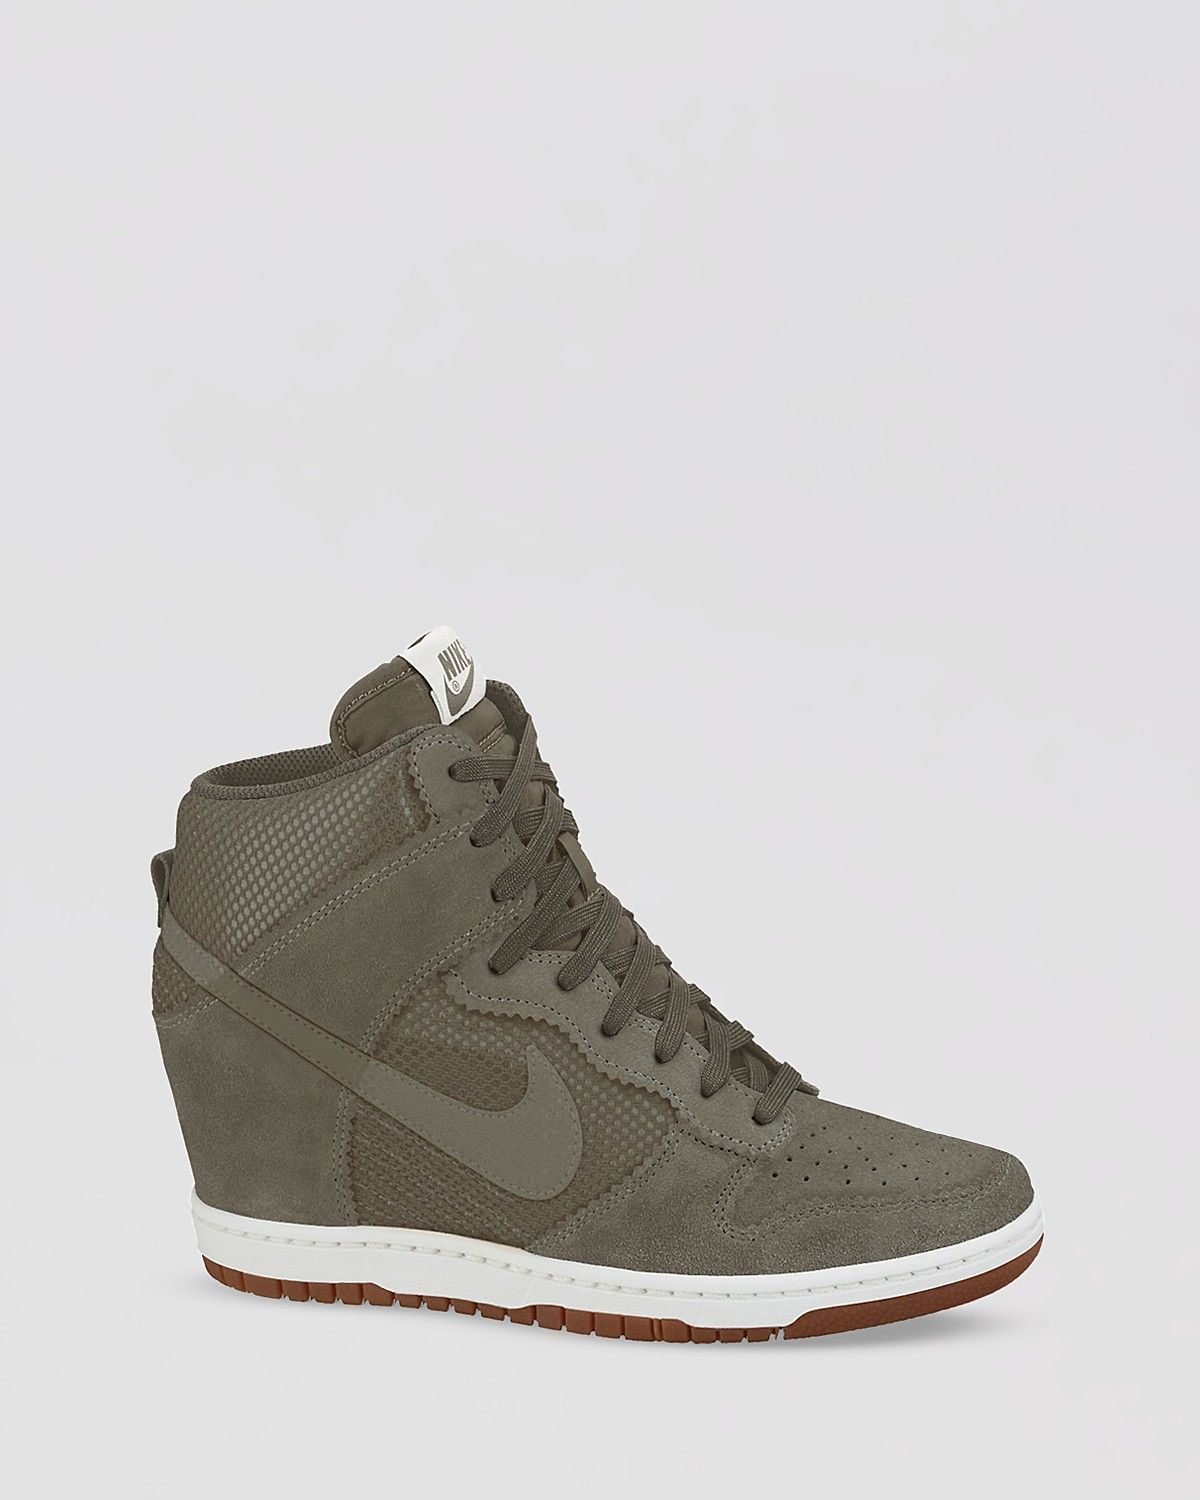 Nike Lace Up High Top Sneaker Wedges- Women's Dunk Sky Hi Mesh |  Bloomingdale's